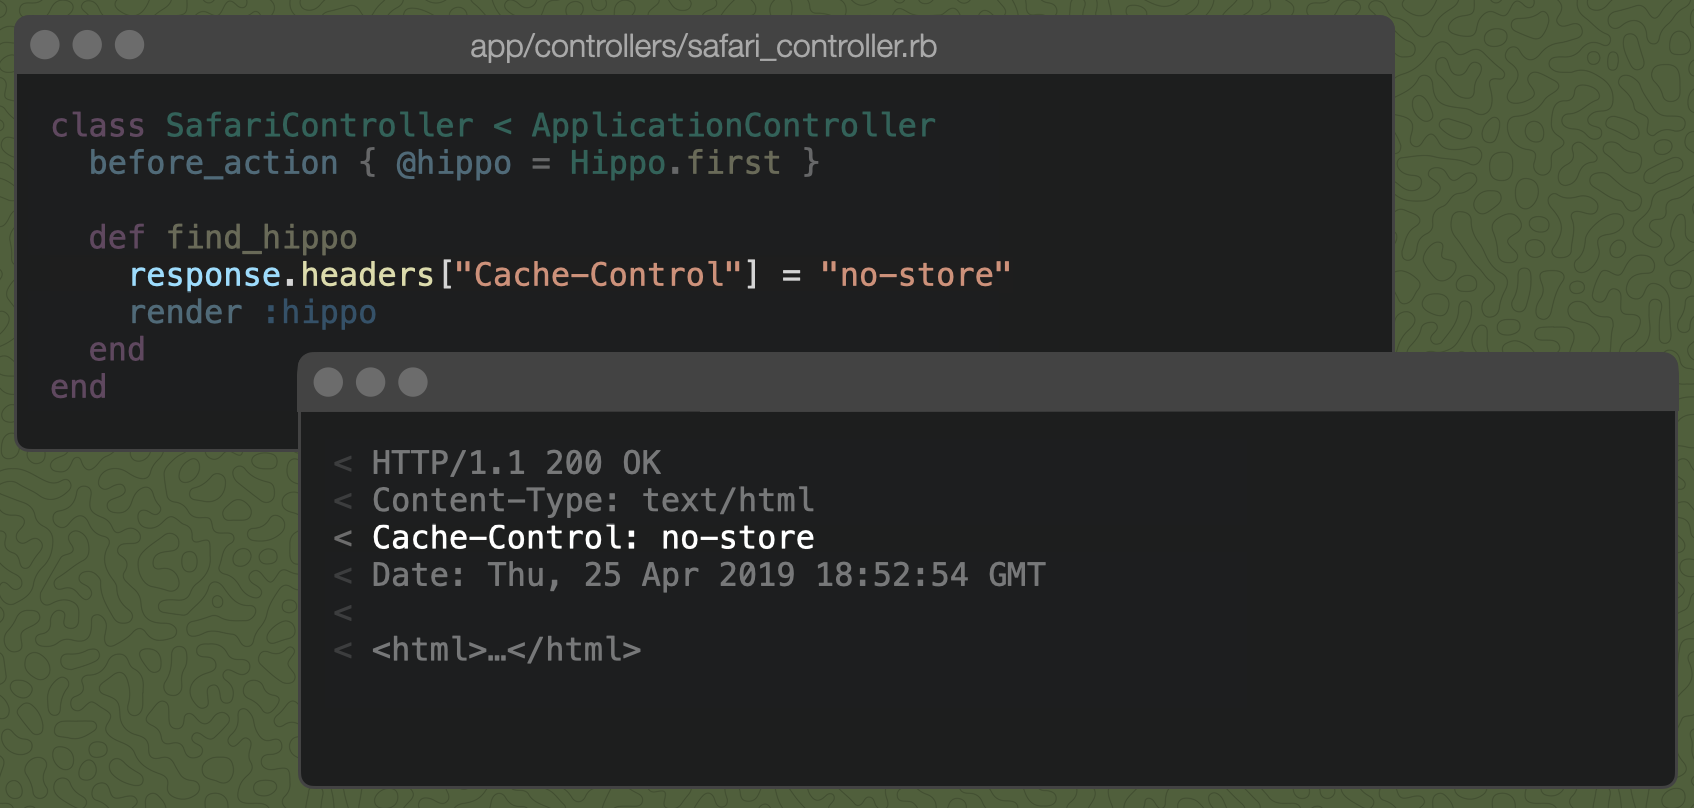 "A Rails controller action with `response.headers[""Cache-Control""] = ""no-store"" and the resulting Cache-Control header: no-store"